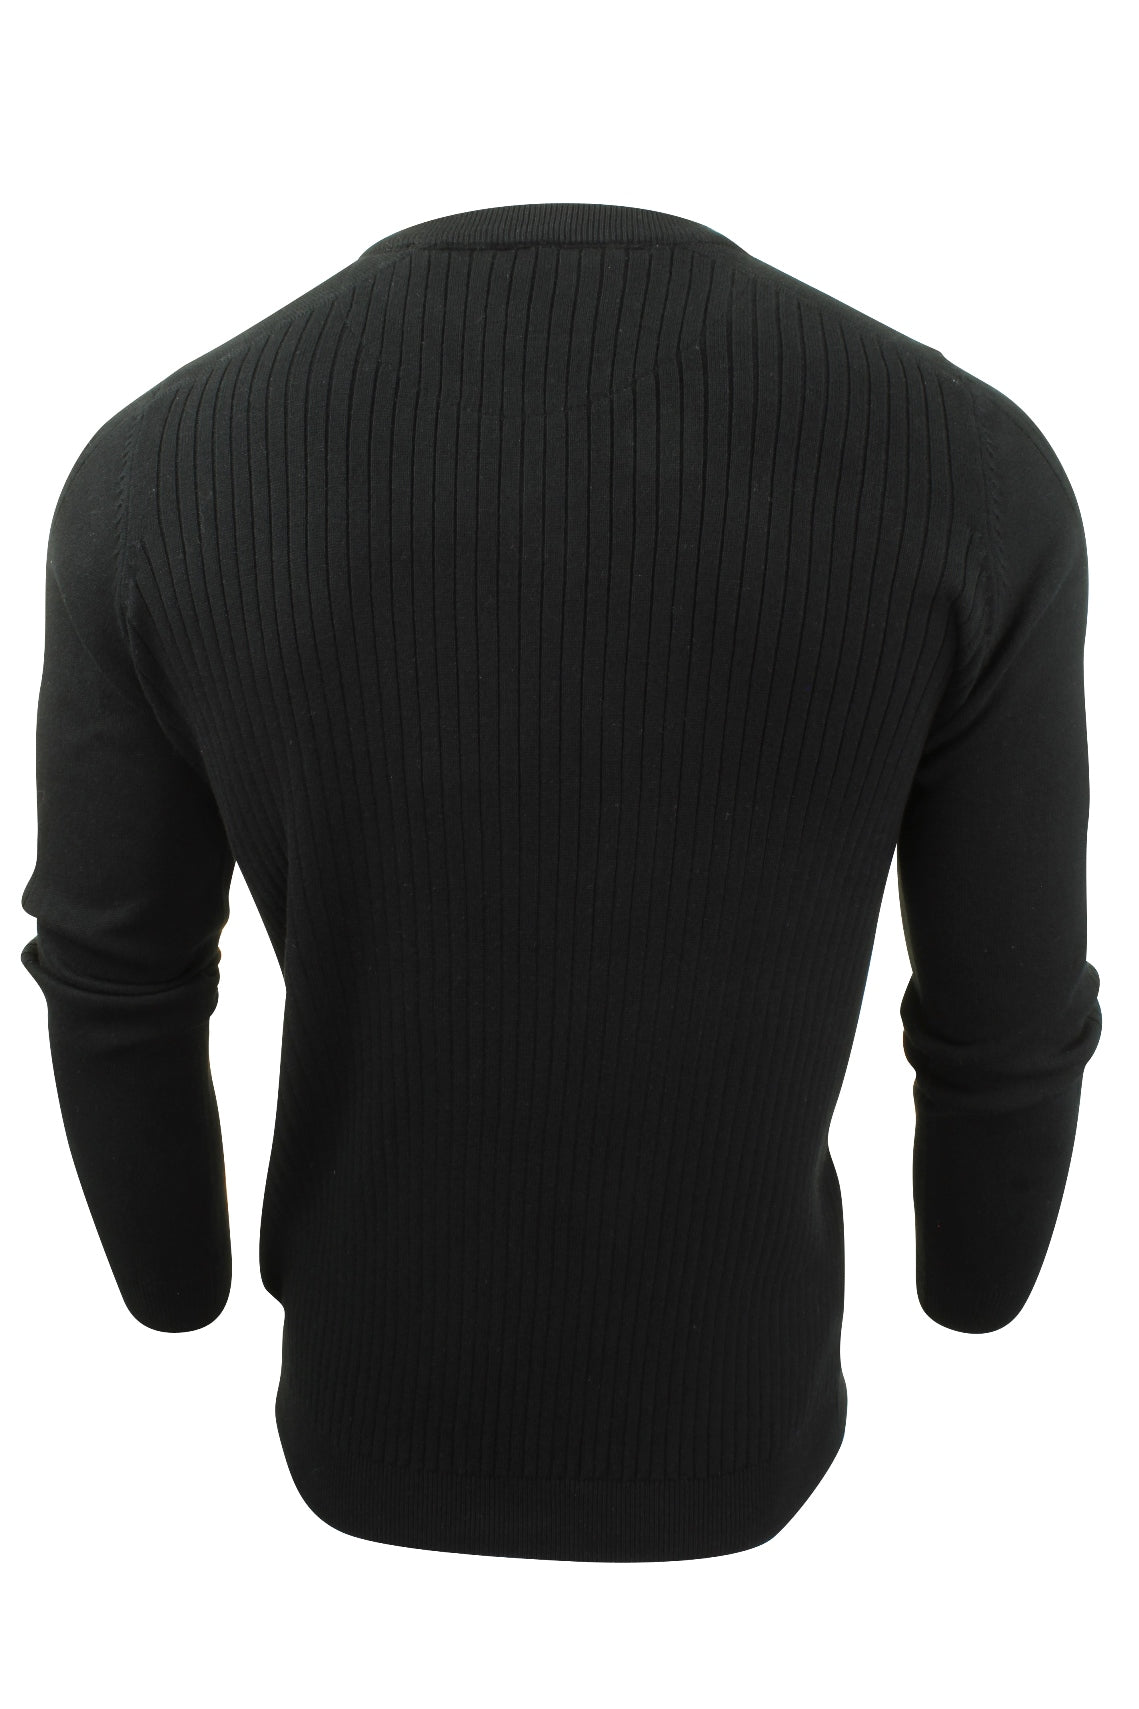 Mens Ribbed Jumper by Dissident 'Peloton' Mock T Shirt-3